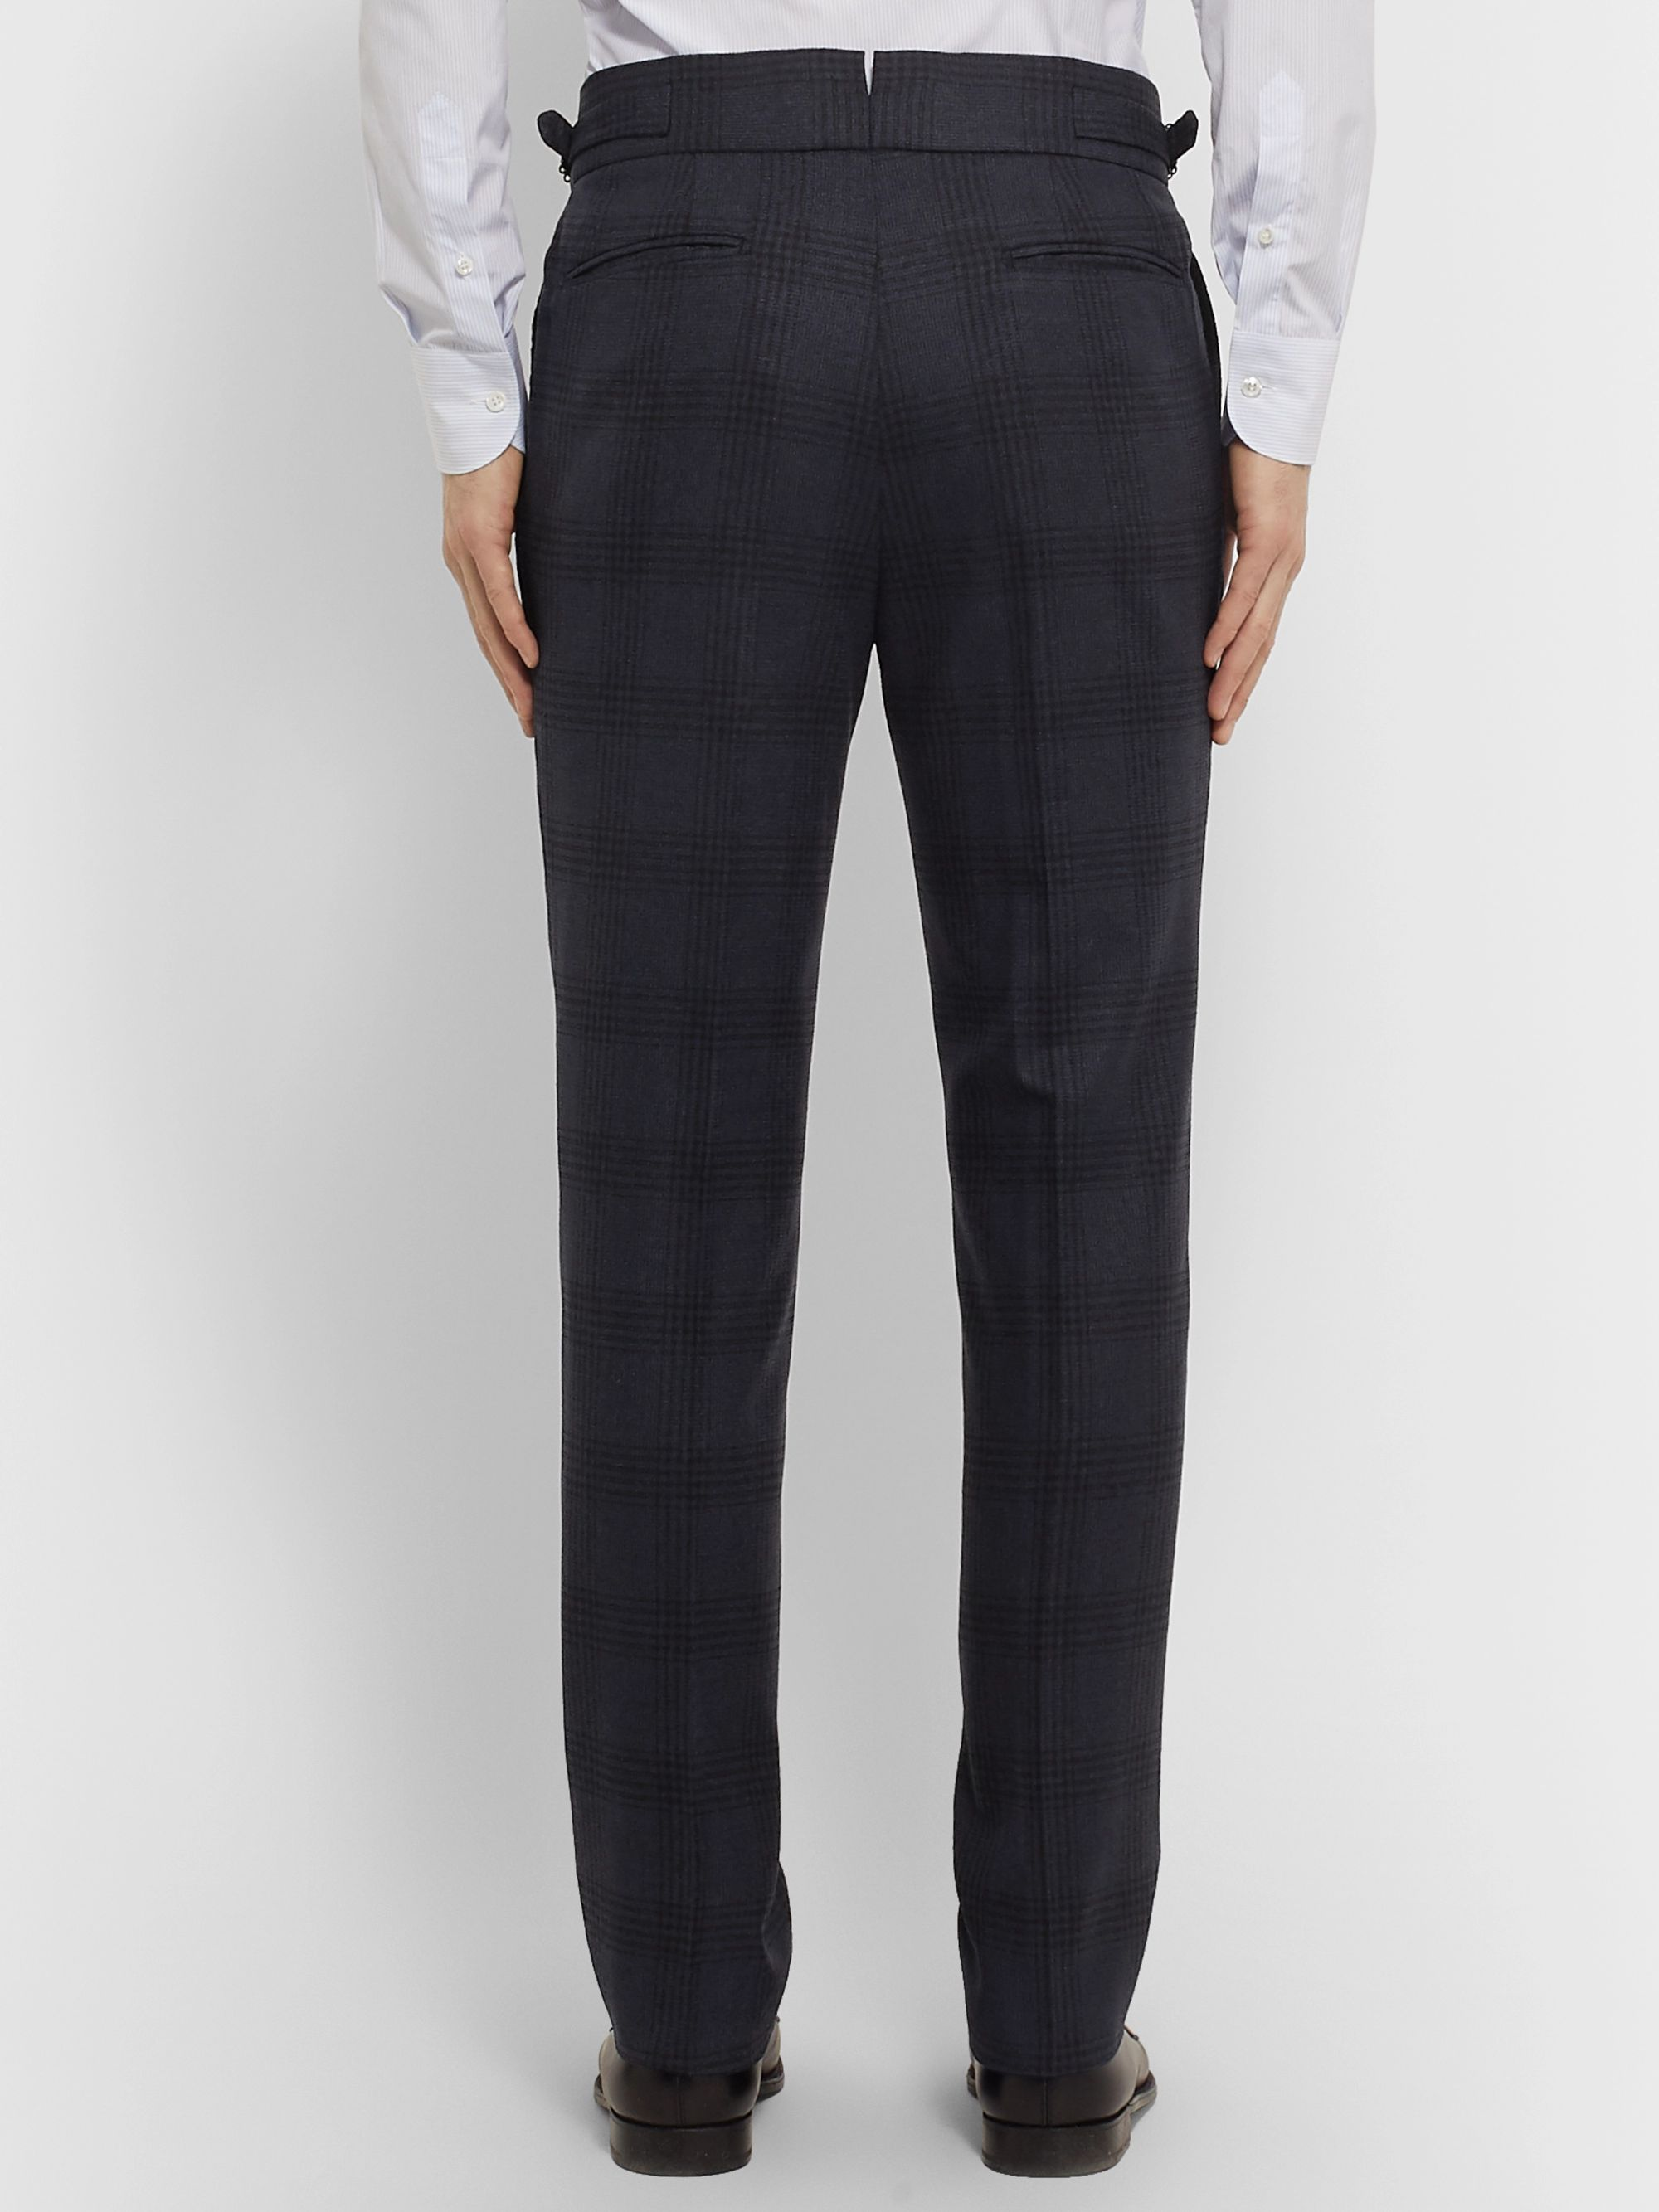 Denis Frison Navy Pleated Prince of Wales Checked Wool Suit Trousers